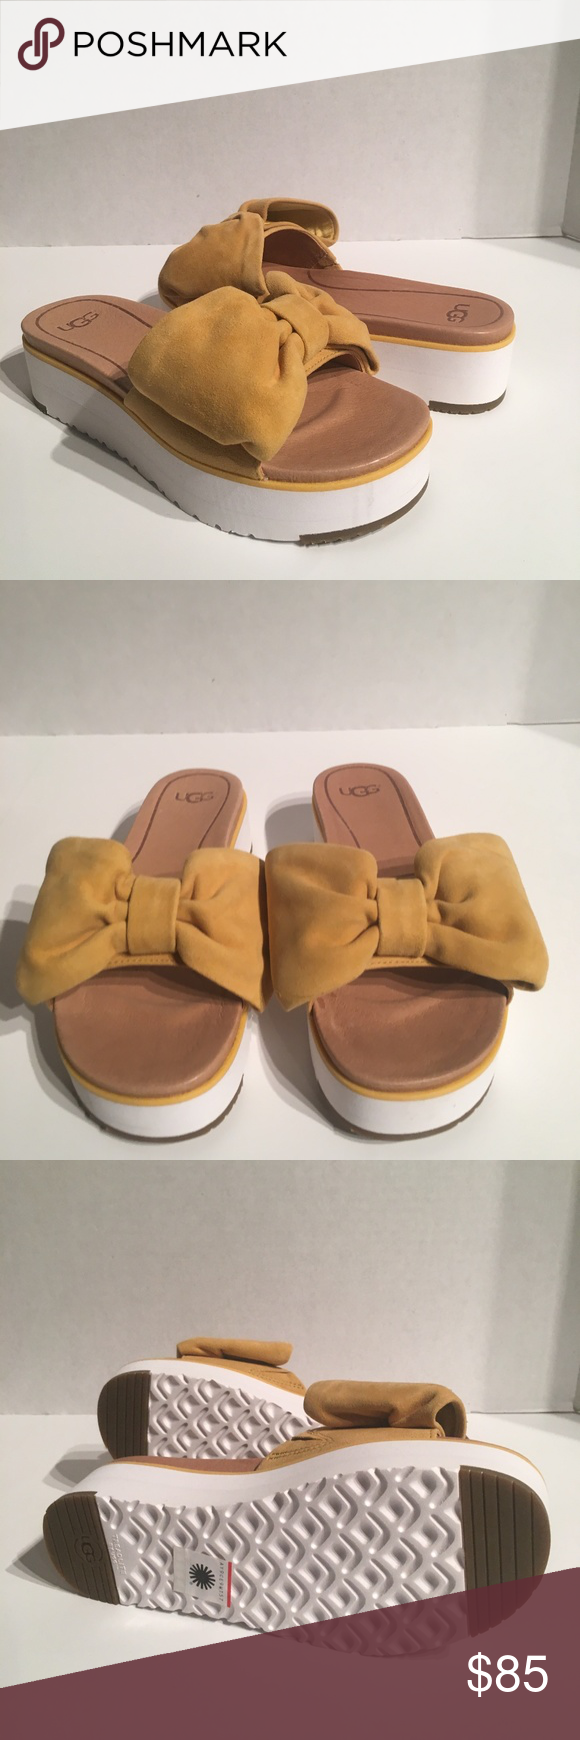 55e62cf96a3 Ugg Joan Sunflower Suede Bow Platform Slide Sandal New with box ...